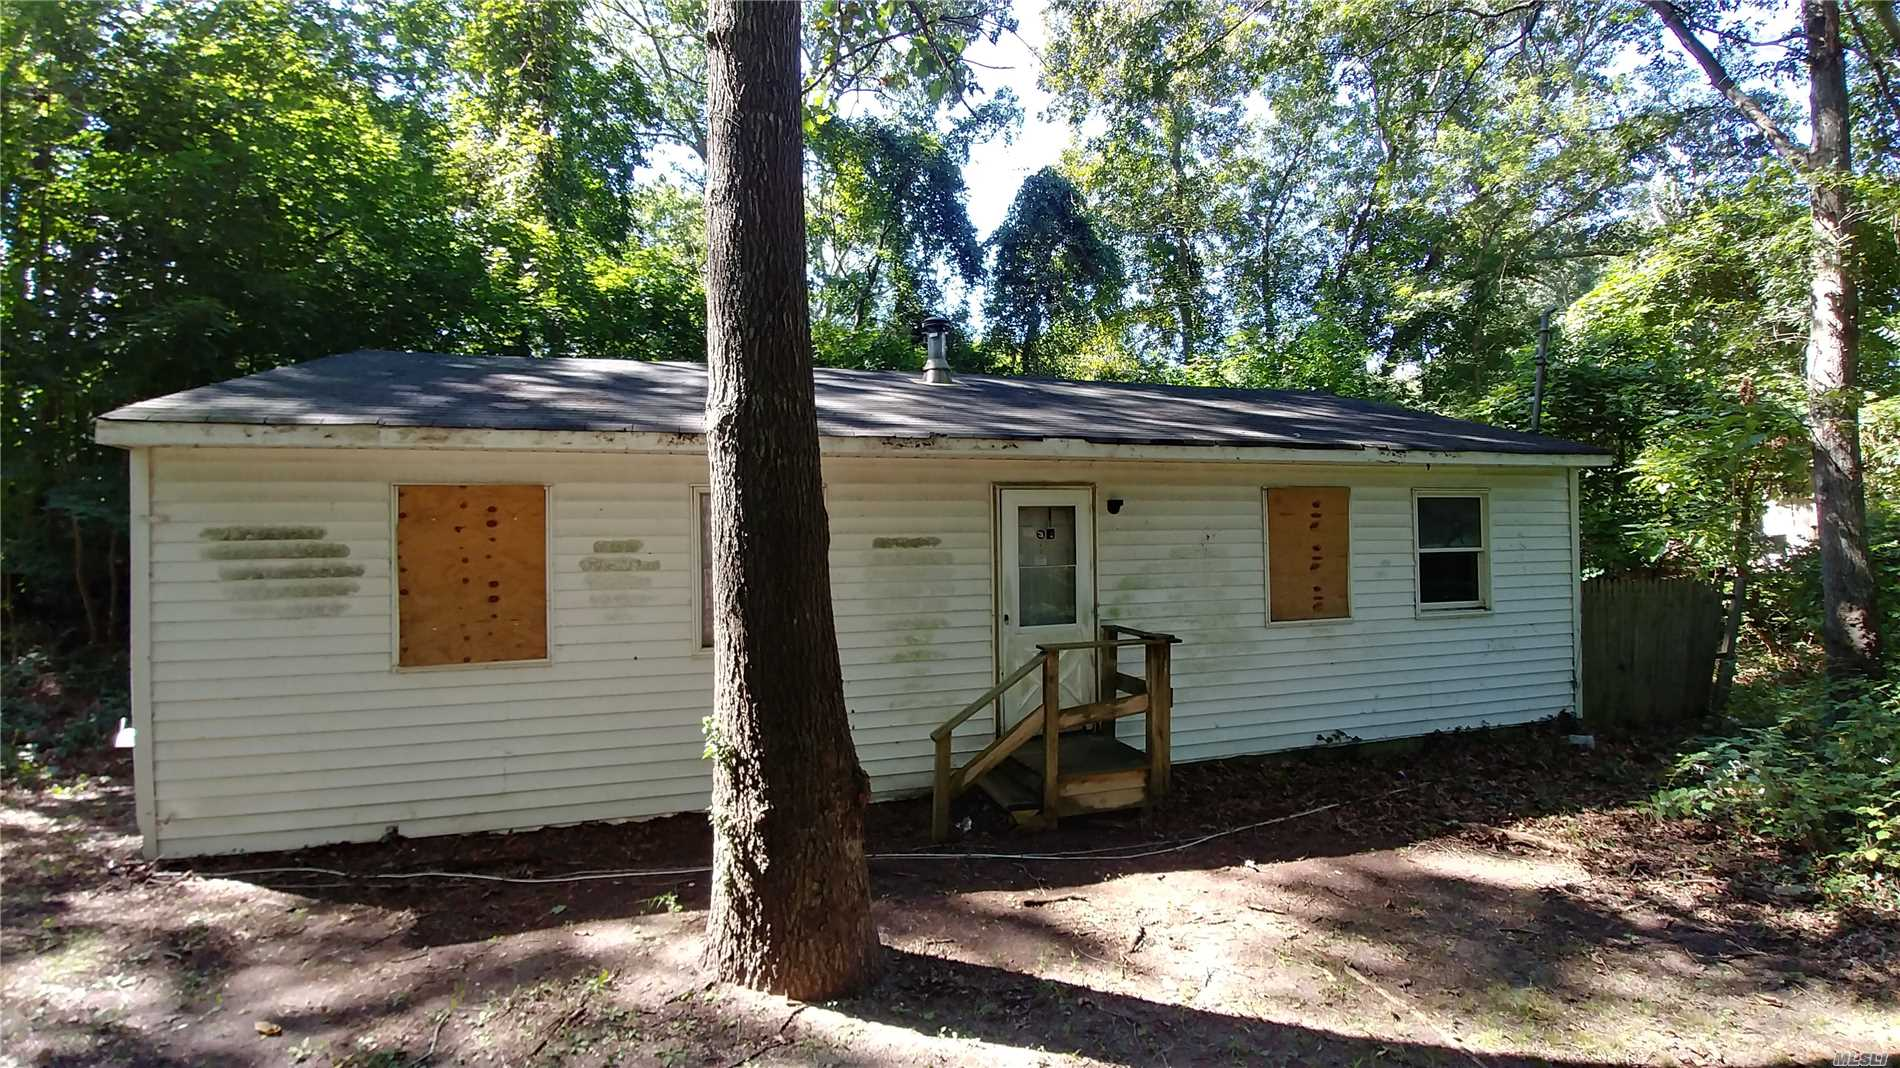 Flanders Rehab Project! Cash Offers Only! As-Is Condition, No Representations Made, Buyer Pays Transfer Tax.  Needs Work  Cash Deals Only   Low !! Taxes